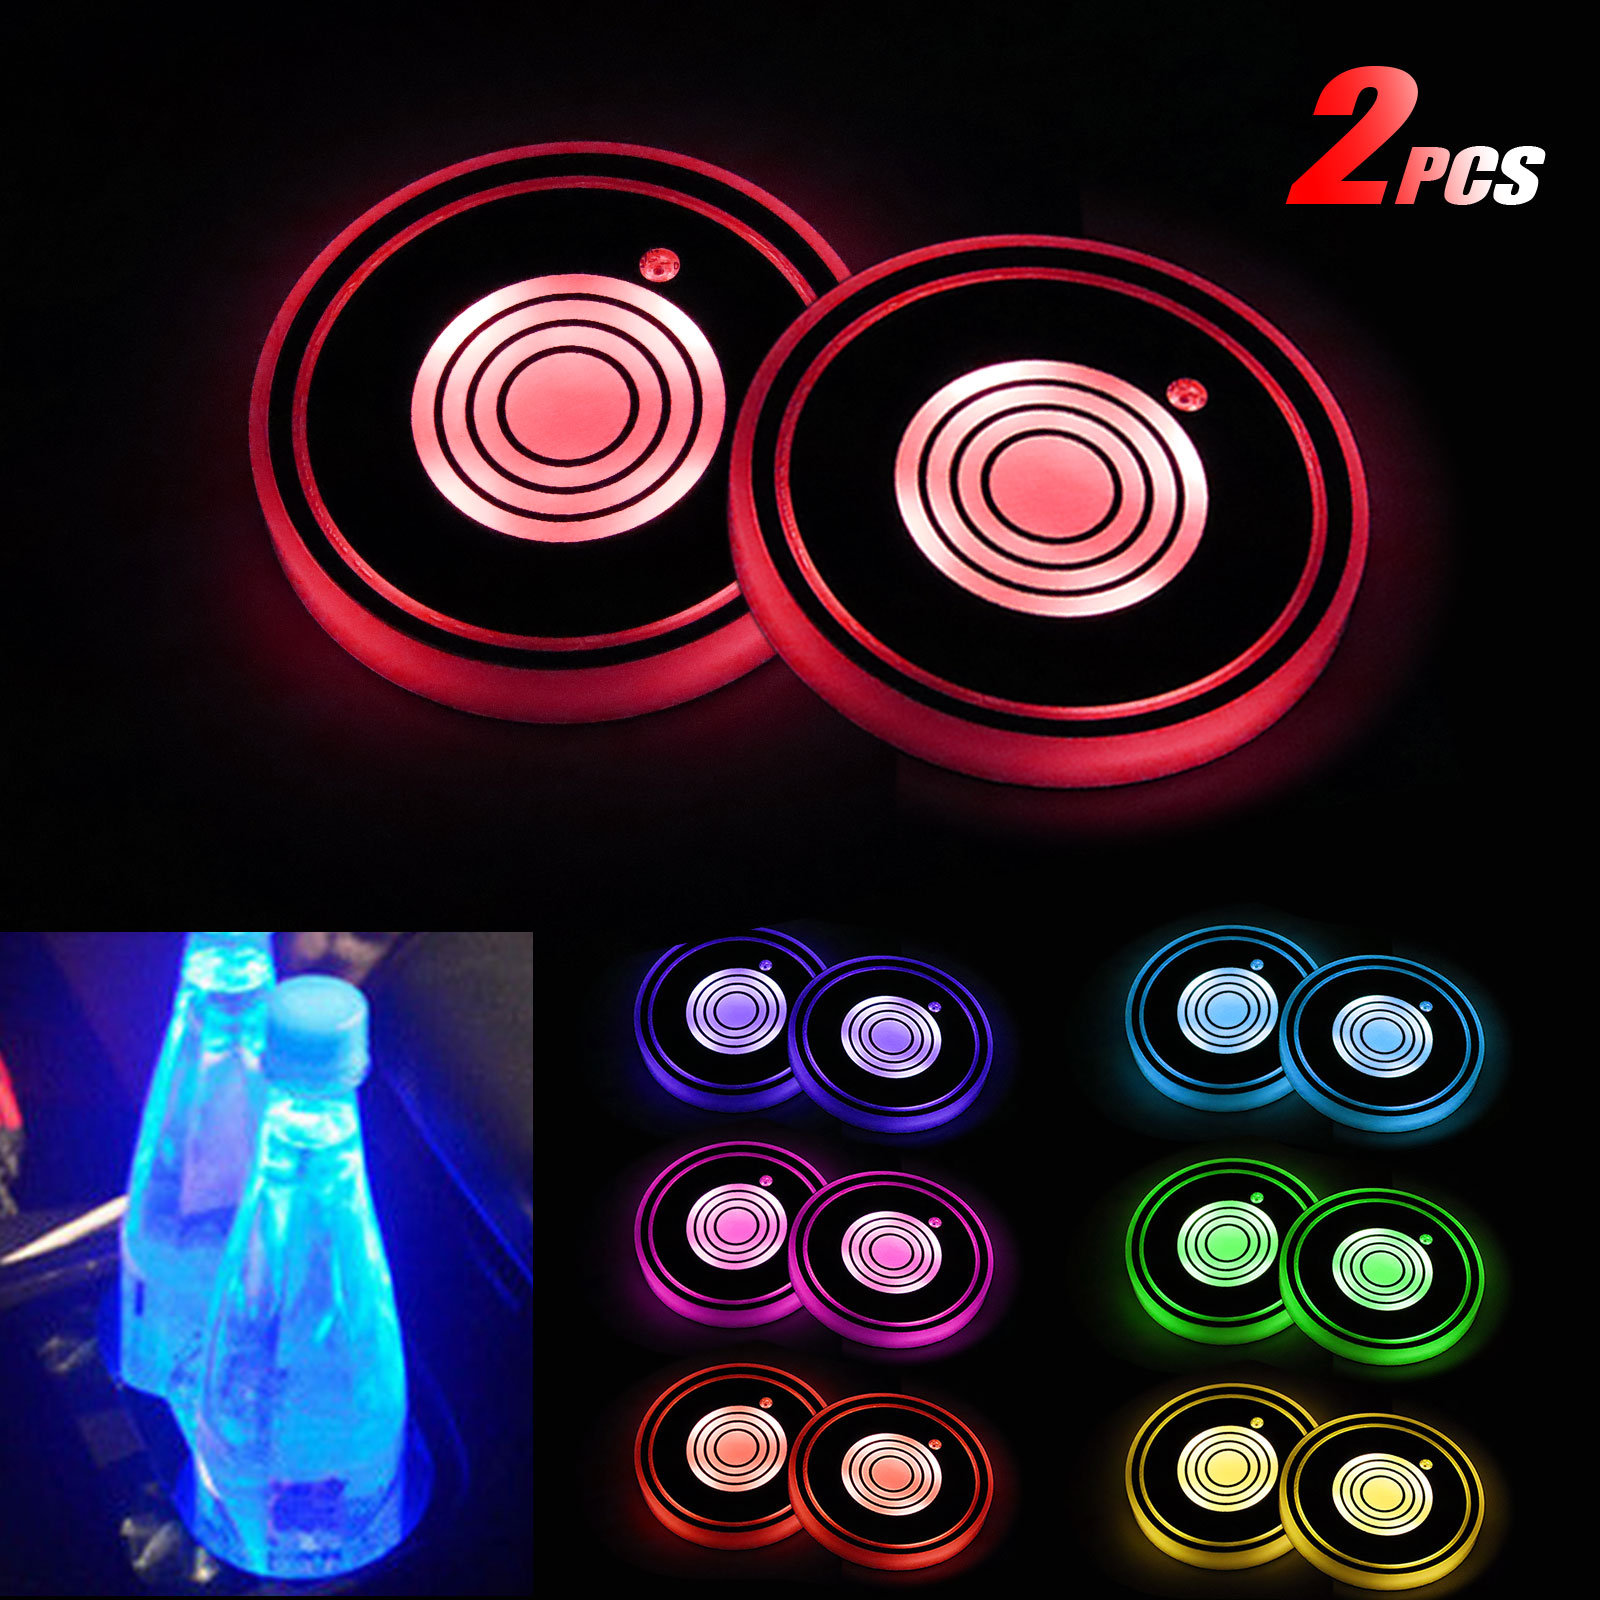 7 Colors Changing USB Charging Mat Luminescent Cup Pad Audi Honghou Technology 2pcs LED Car Cup Holder Lights for Audi LED Interior Atmosphere Lamp